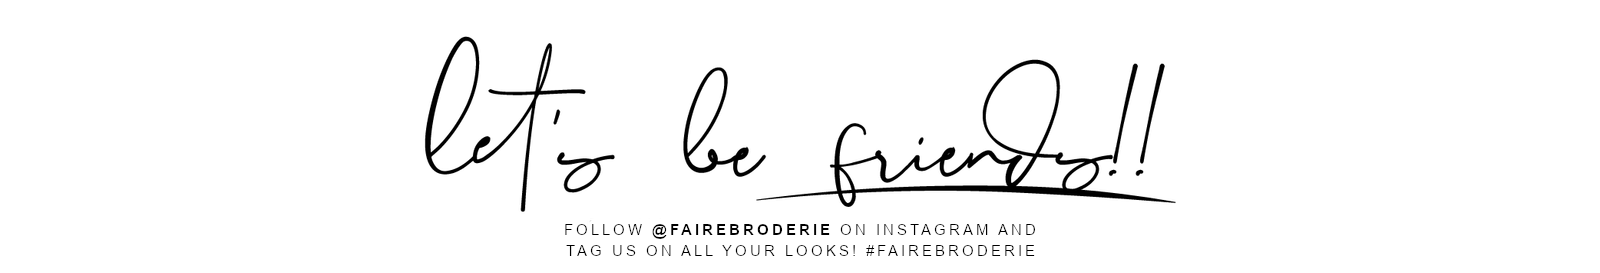 follow faire broderie on instagram